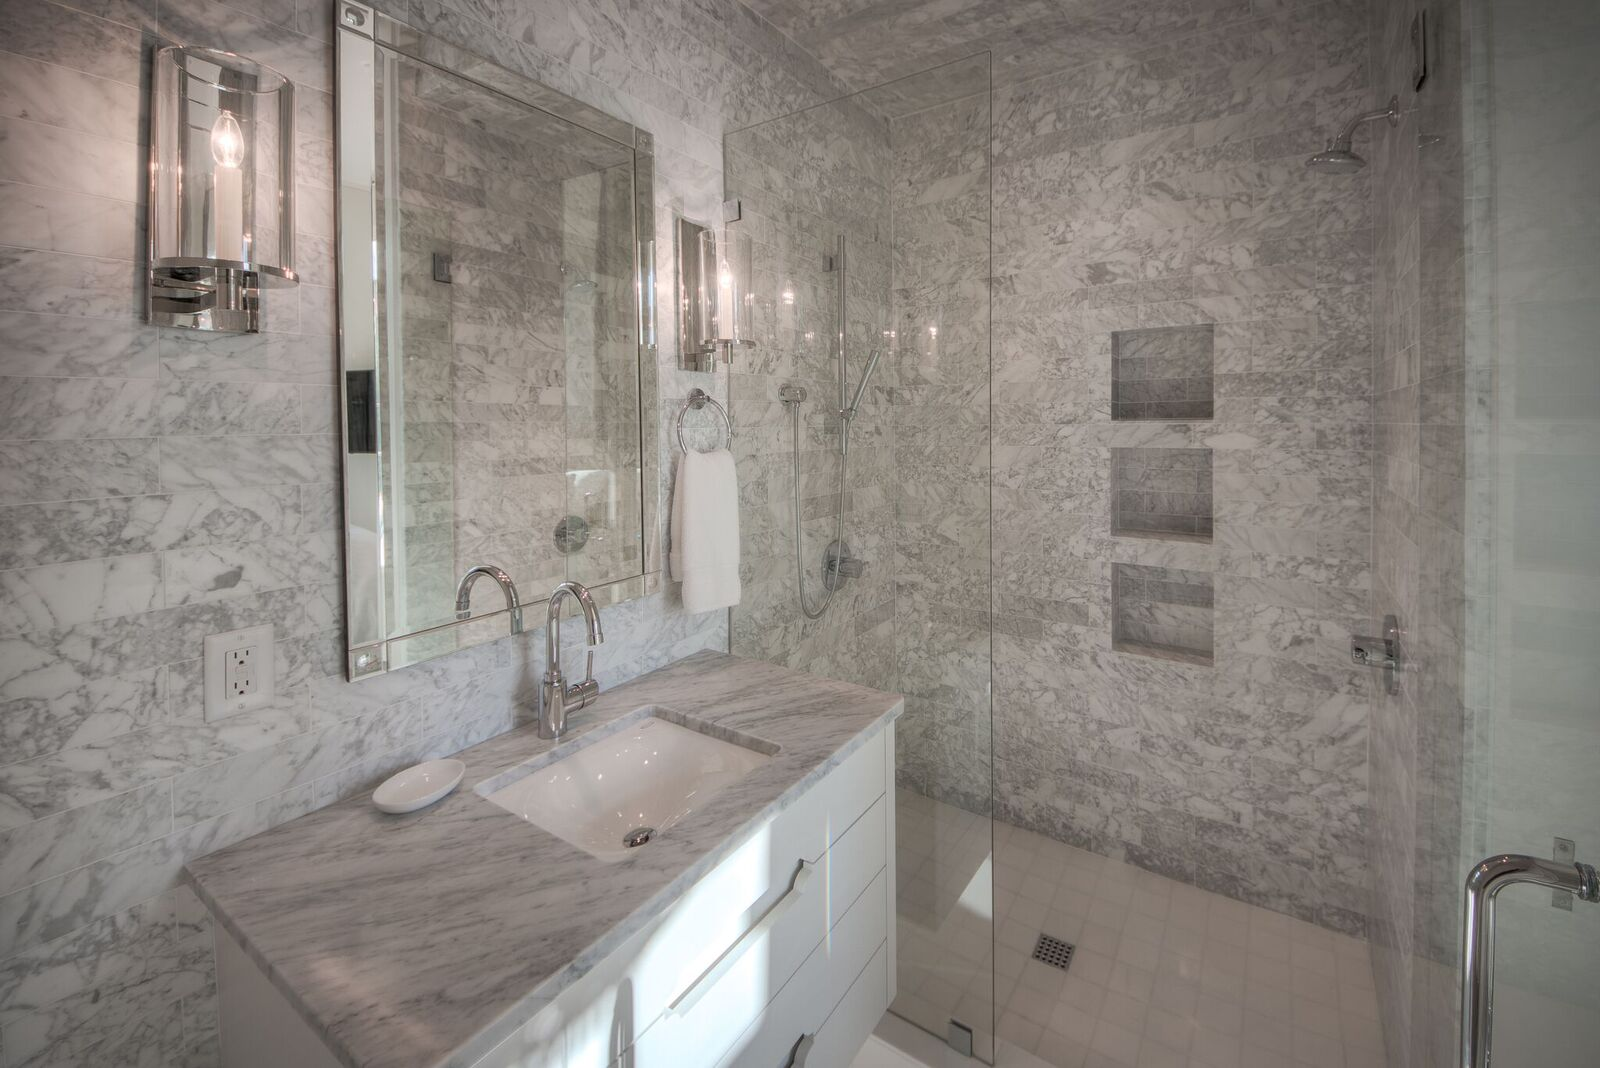 Ensuite bathrooms with walk-in showers for each bedroom